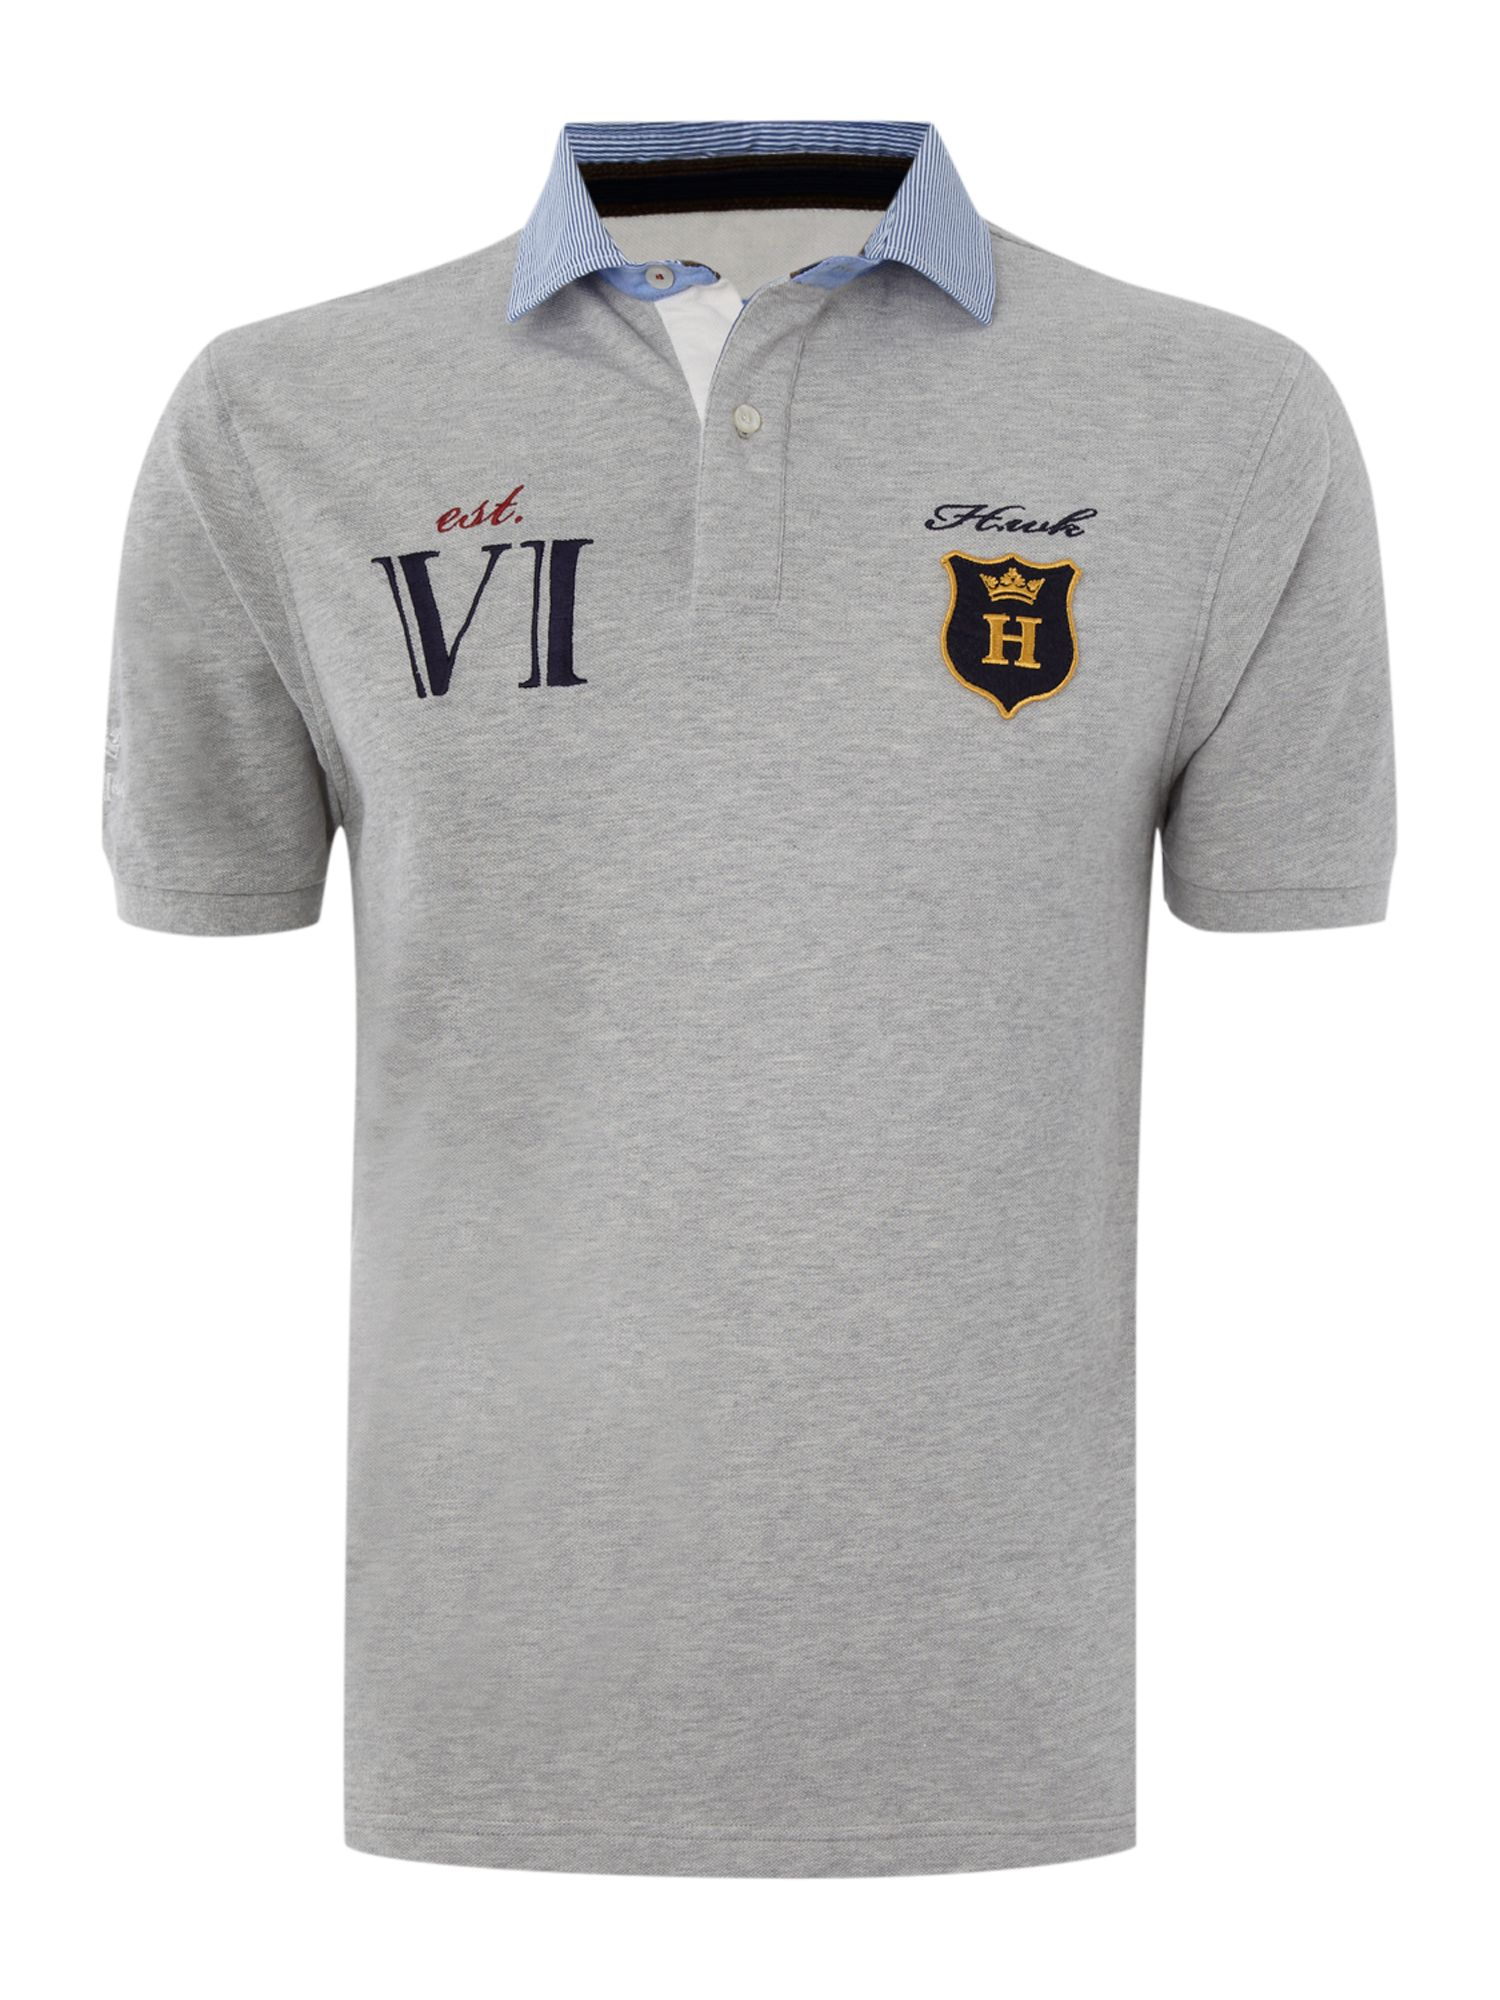 Colonial club short sleeved pique polo